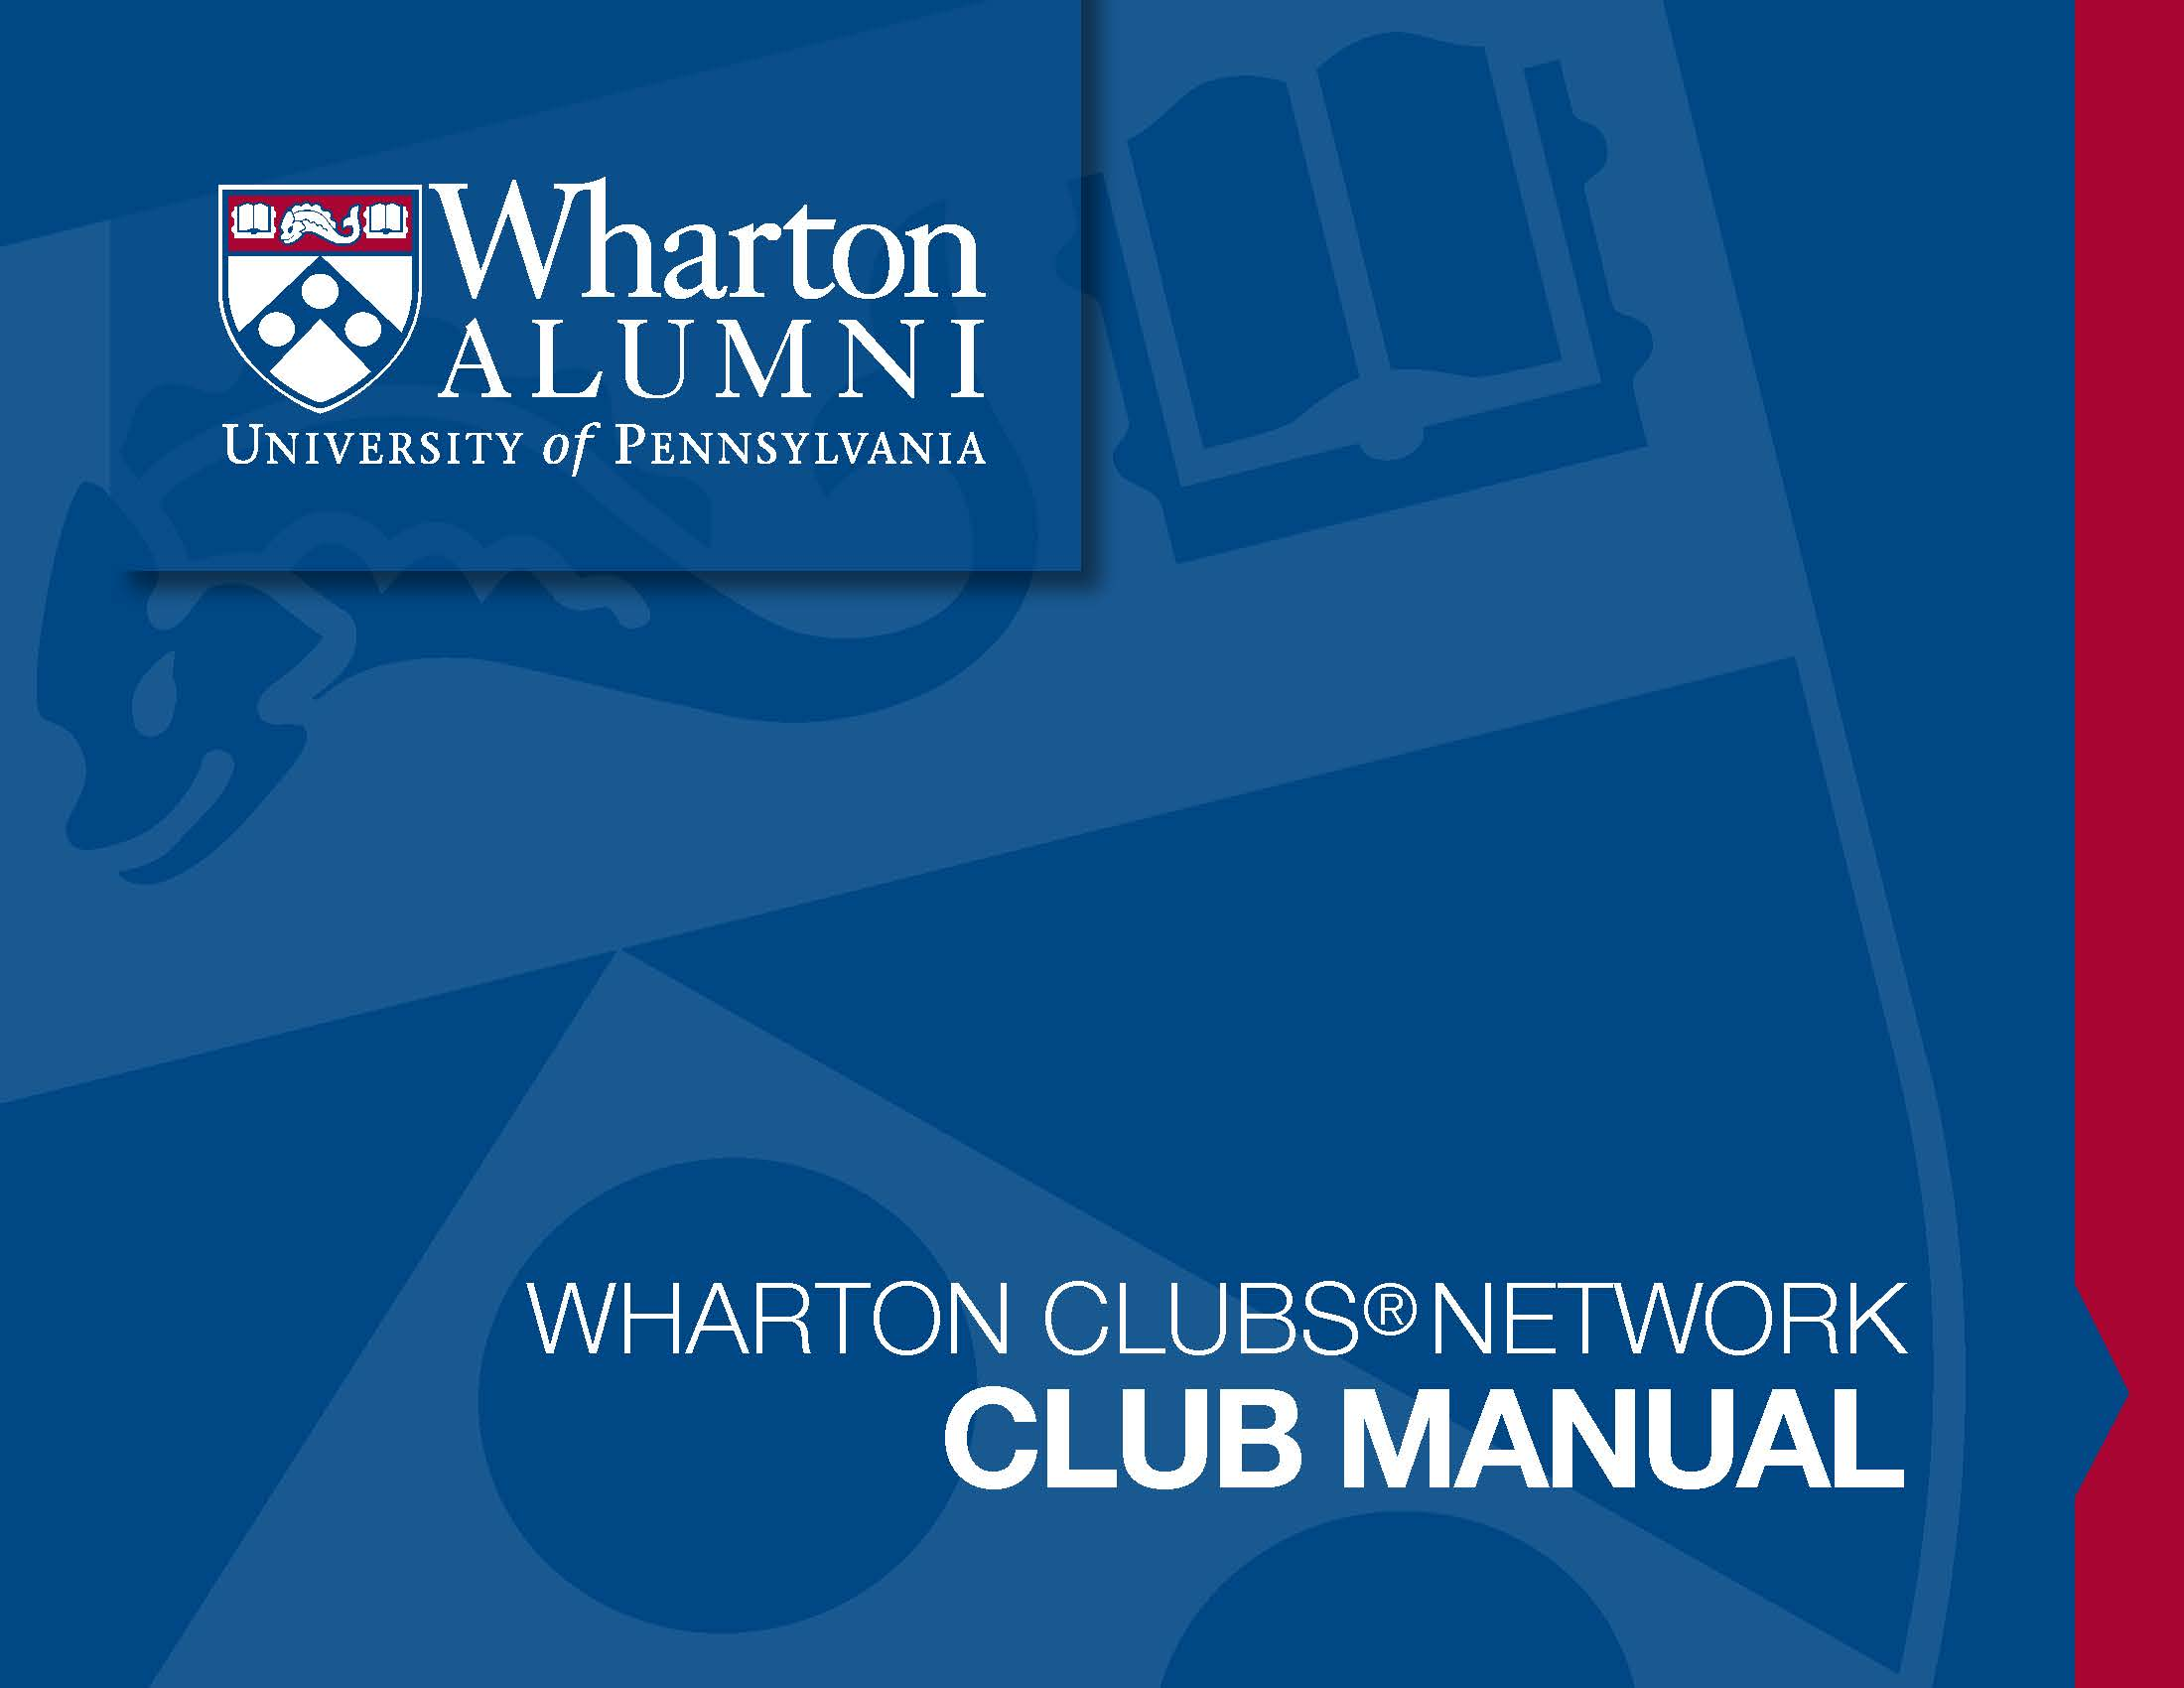 Wharton_Global_Clubs_Manual_2016_Page_01.jpg